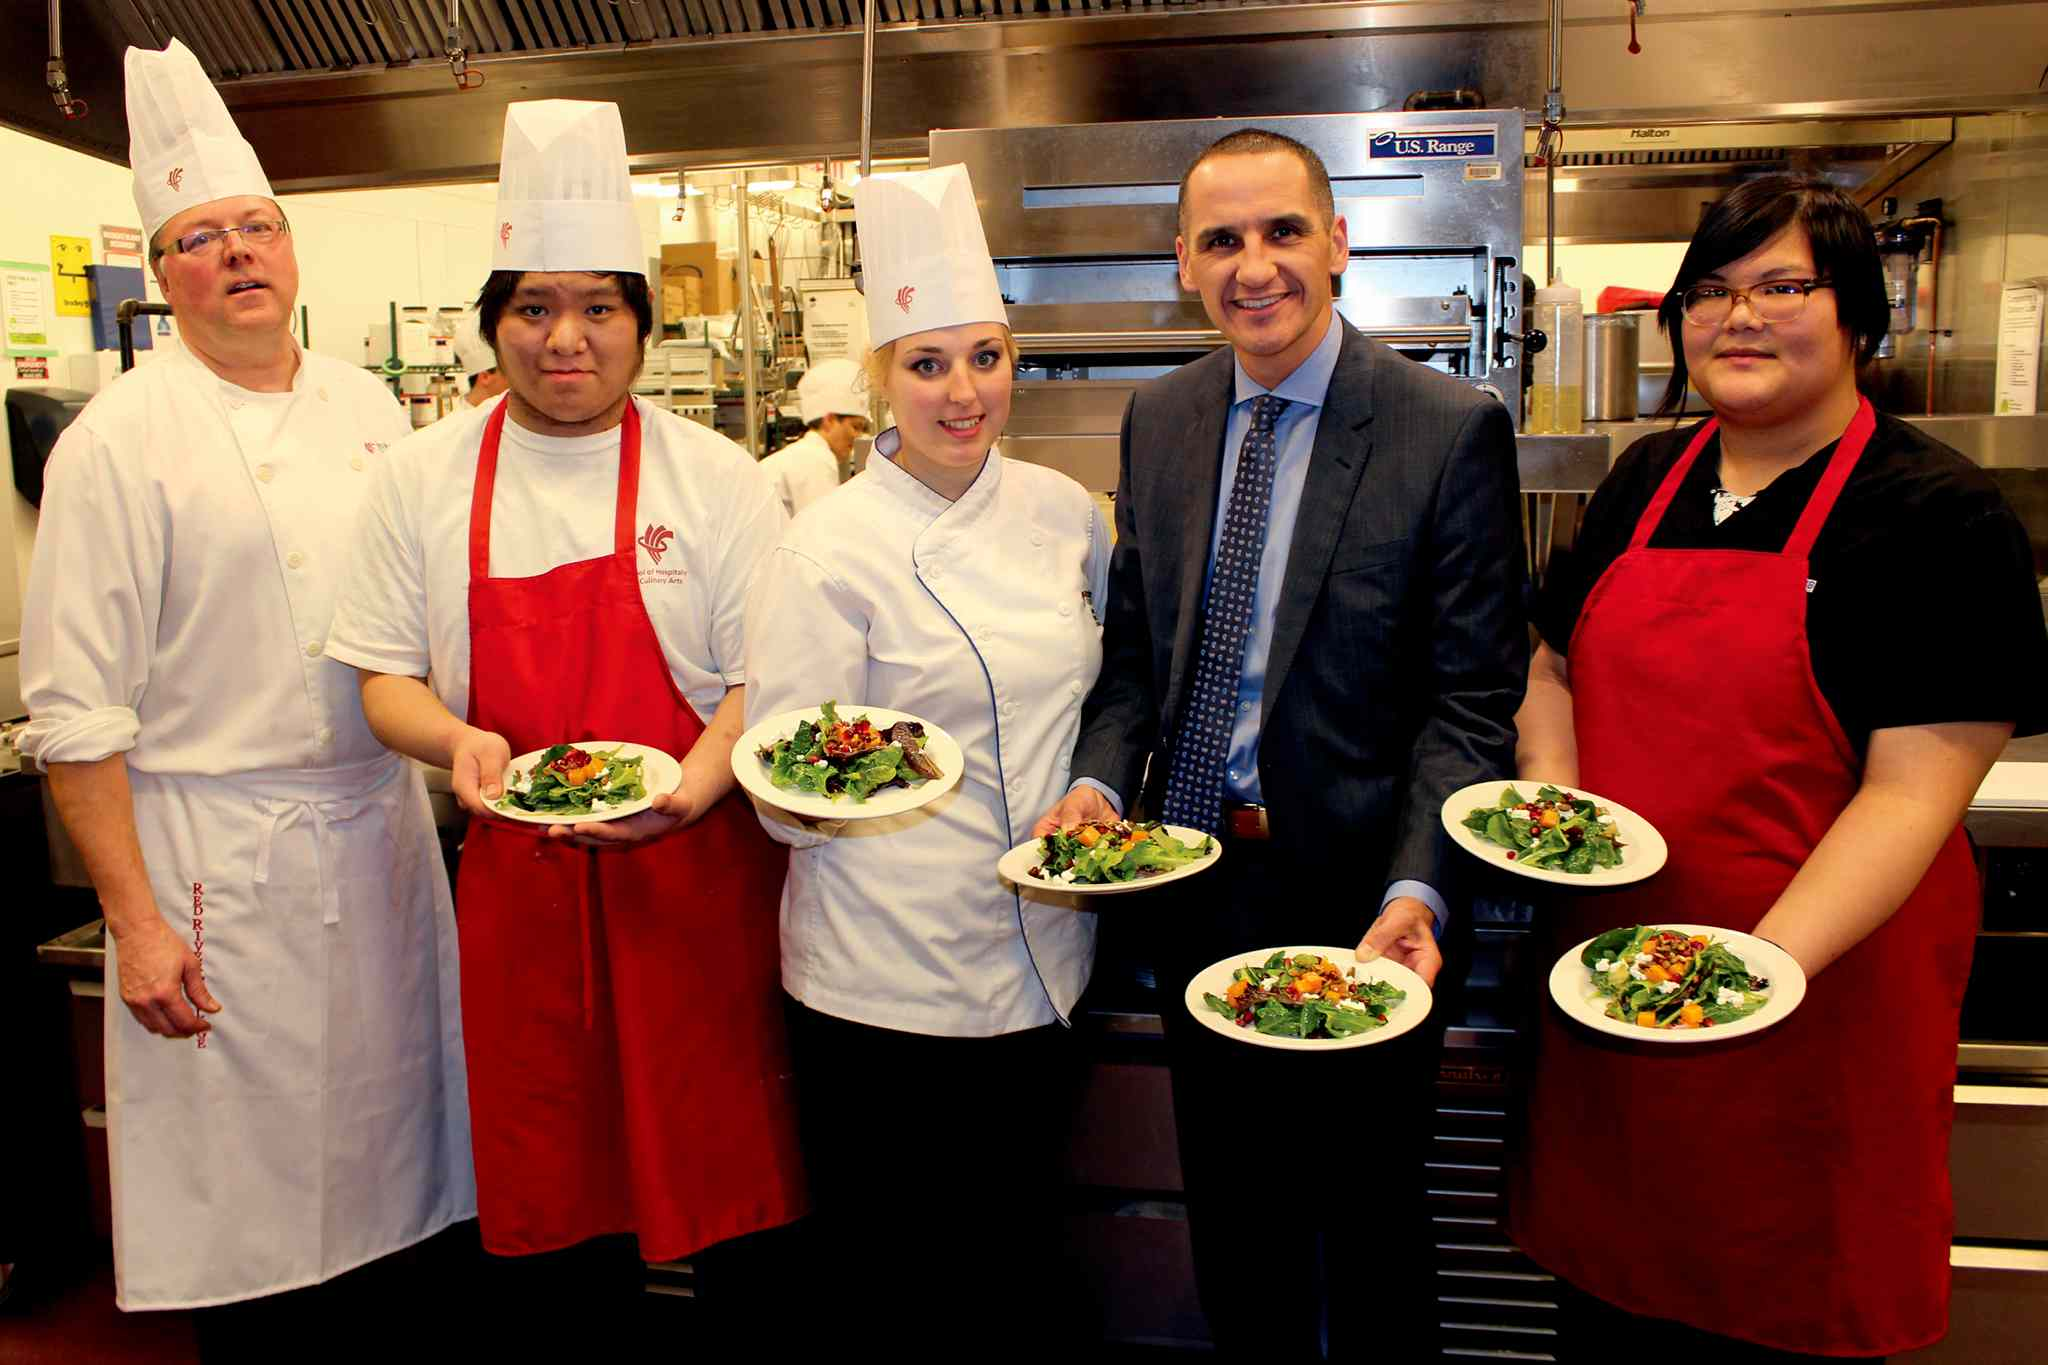 (From left) Chef Karl Oman, Culinary Arts instructor; Ben Nguyen, After School Leaders participant, Samantha Bencharski, Culinary Arts student, Kevin Chief, MLA for Point Douglas and Cheyla Ponace, After School Leaders participant.